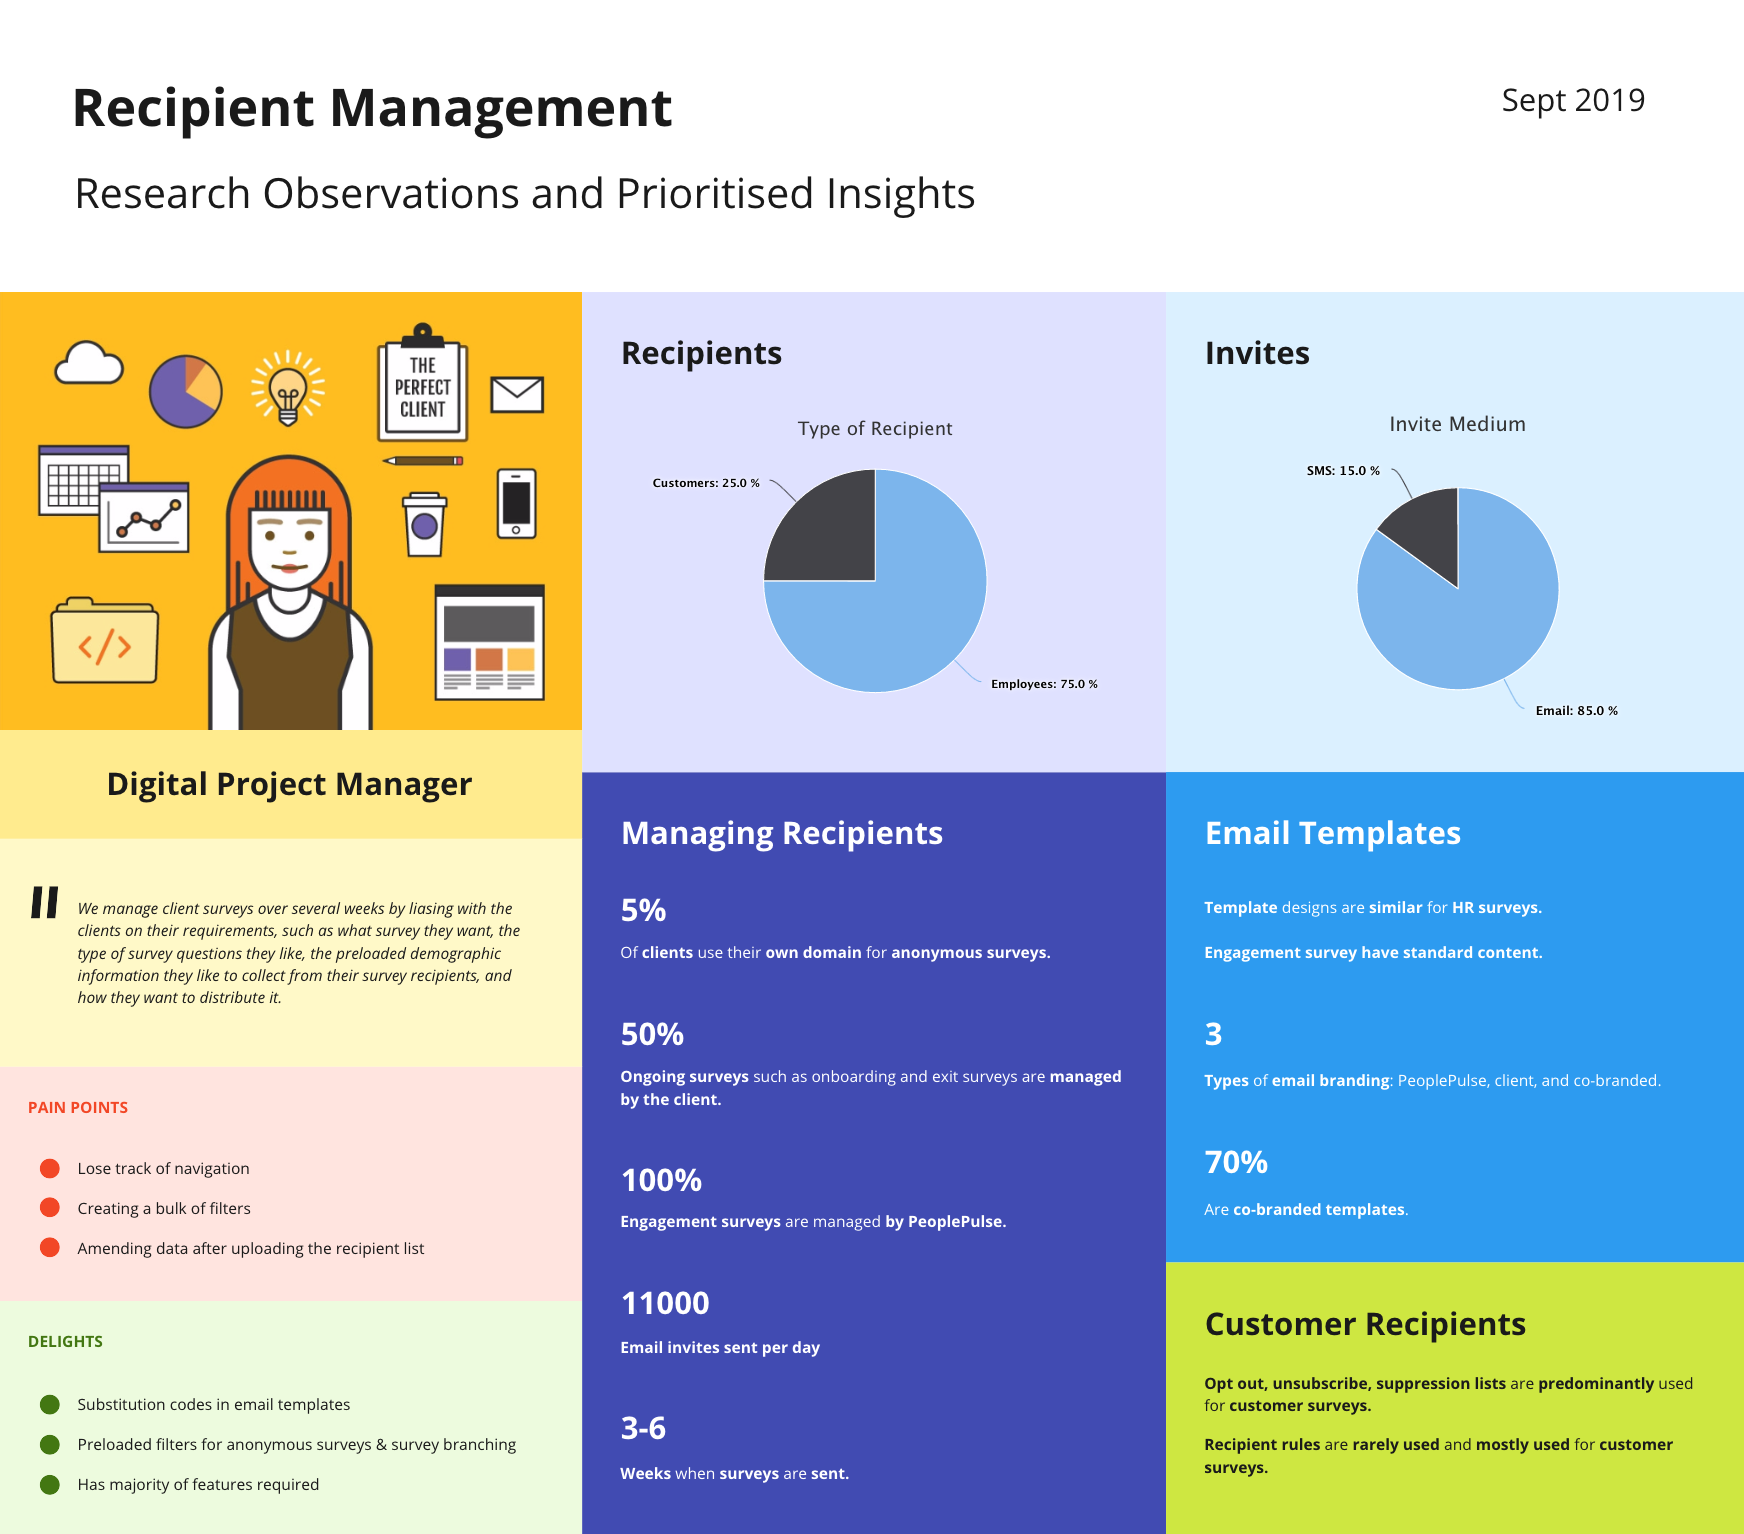 PeoplePulse Recipient Management personas and research insights